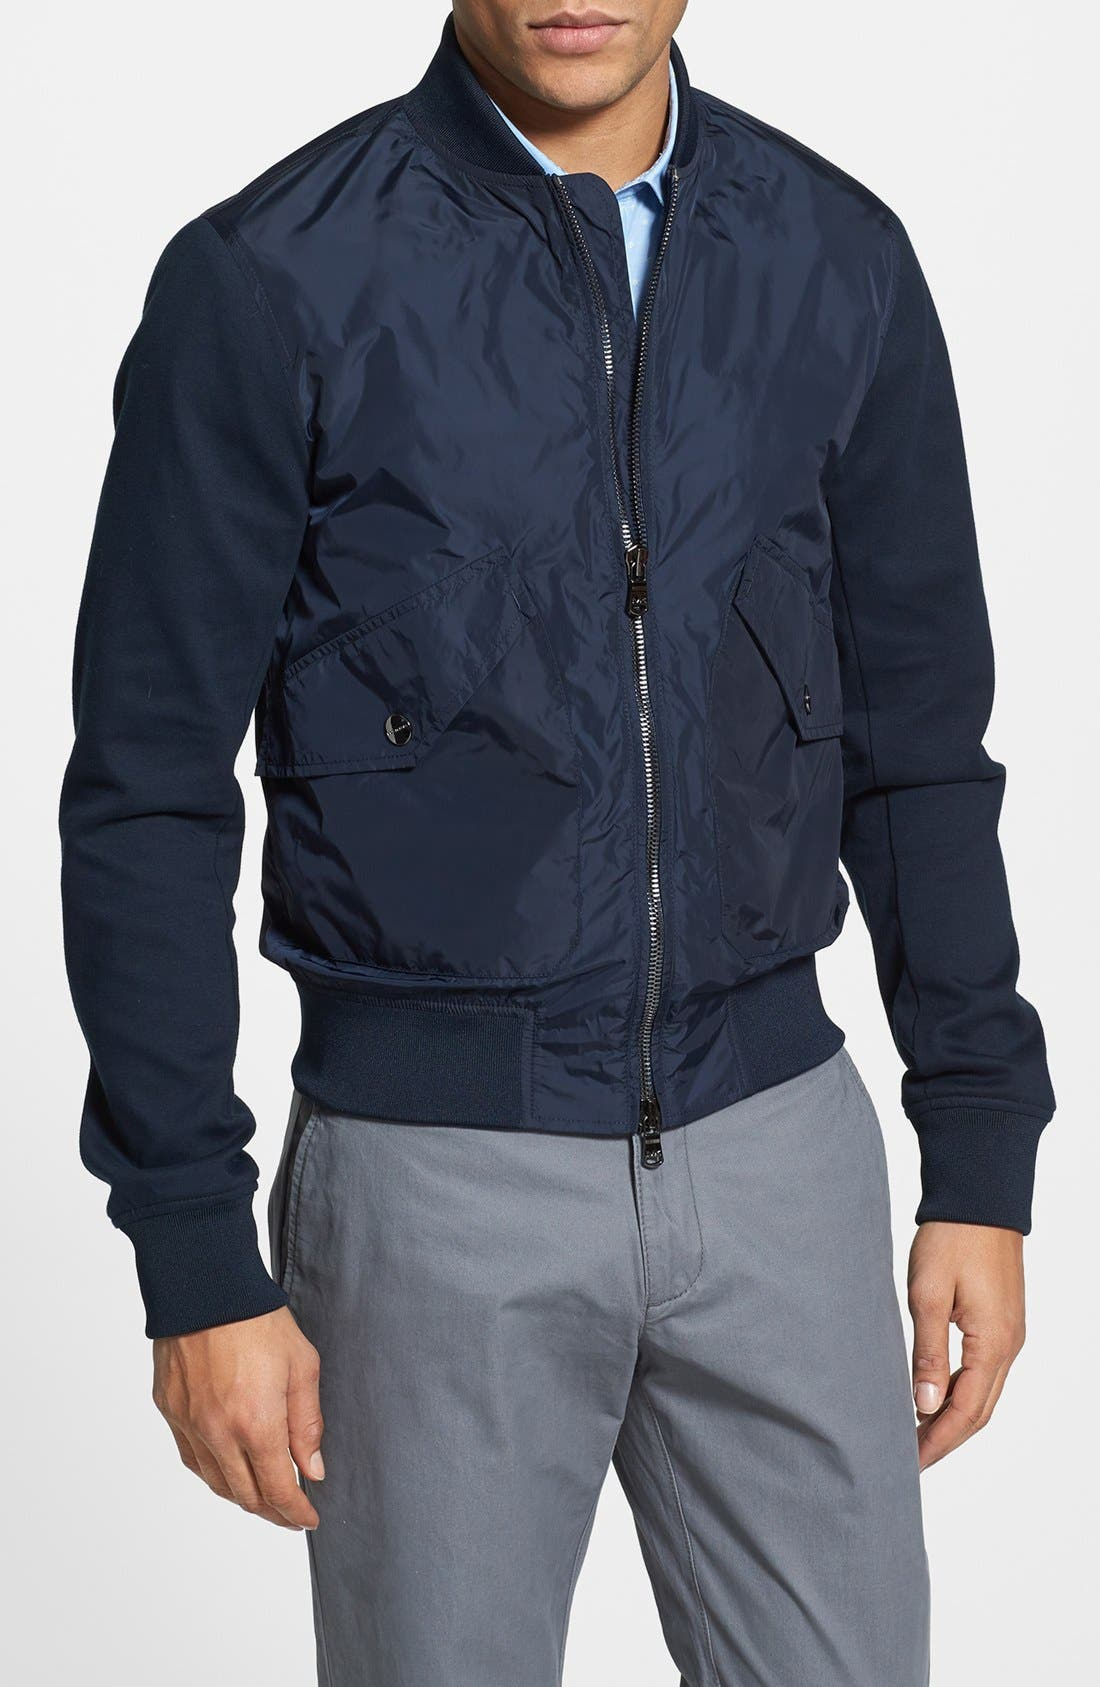 Main Image - Michael Kors 'Baseball' Bomber Jacket